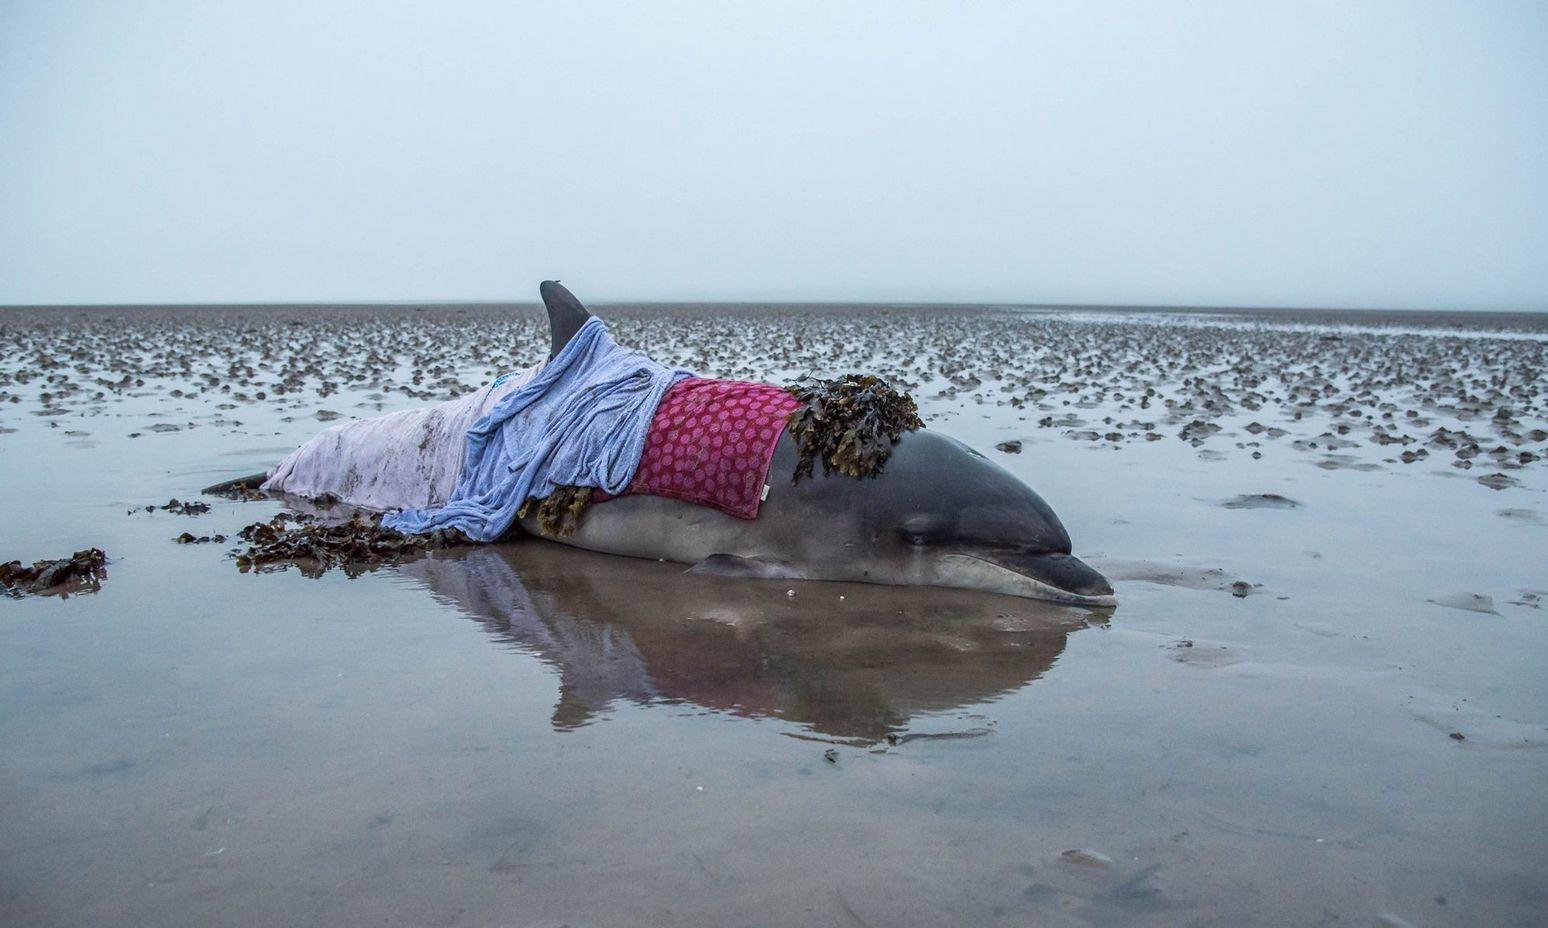 The stranded dolphin Lorraine Culloch found in Nigg, Aberdeen, after her Sat Nav gave her the wrong